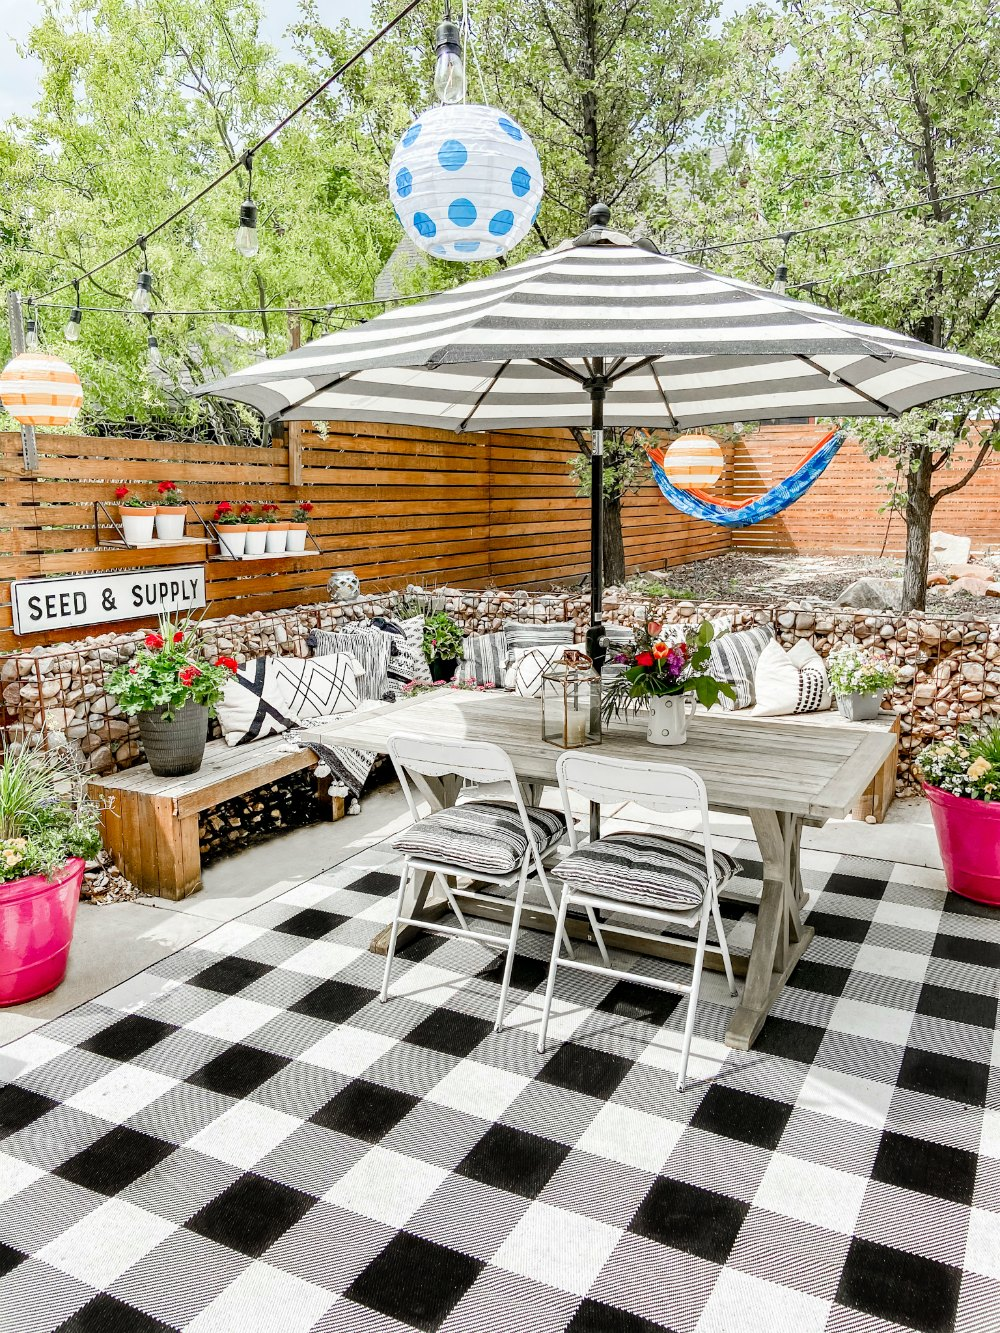 DIY Hanging Patio Garden. Make the most of your patio space by hanging shelves and planting flowers or herbs in painted pots!